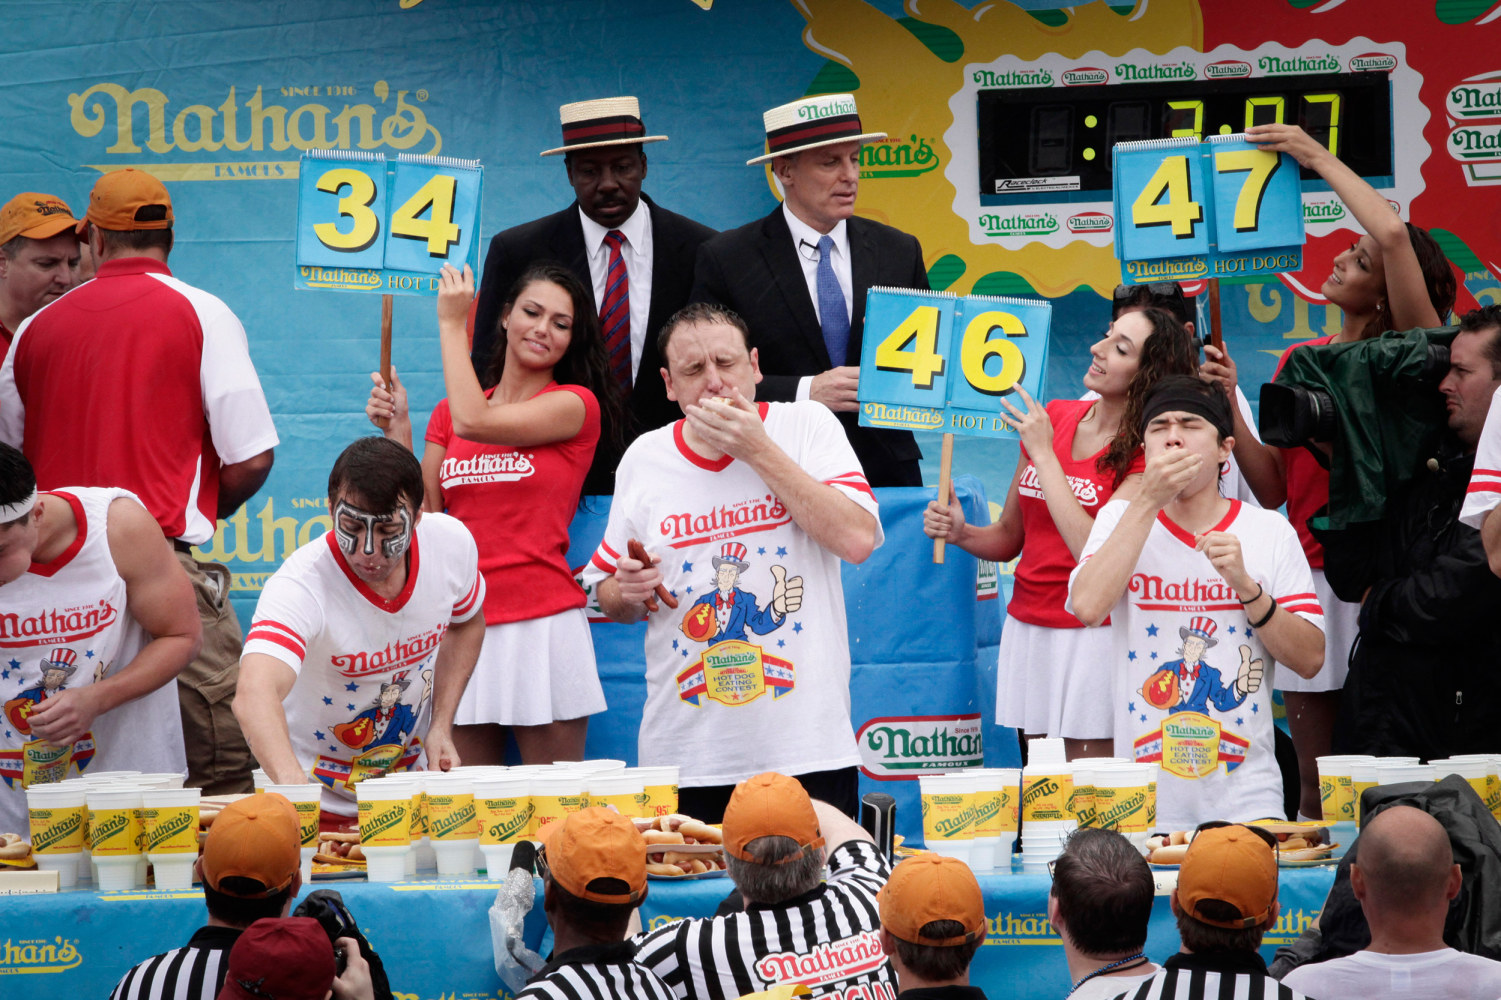 Coney Island Hot Dog Eating Contest Video